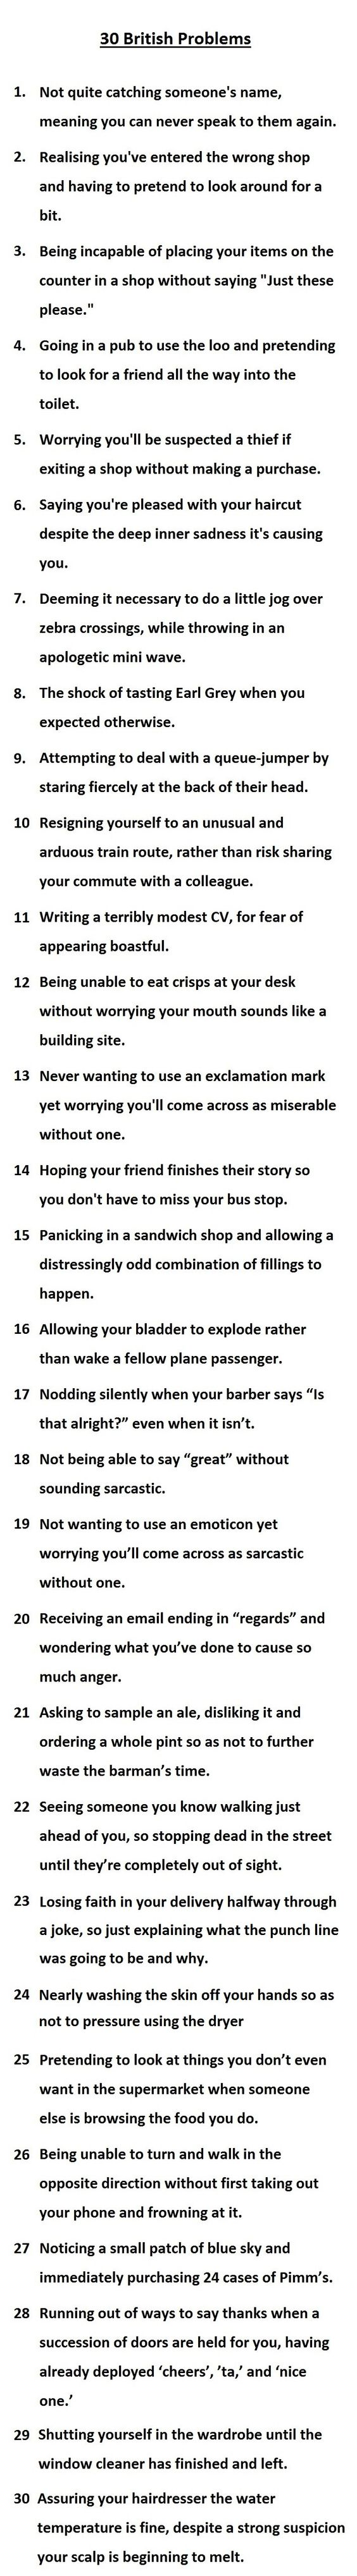 Funny Very British Problems Collection Picture